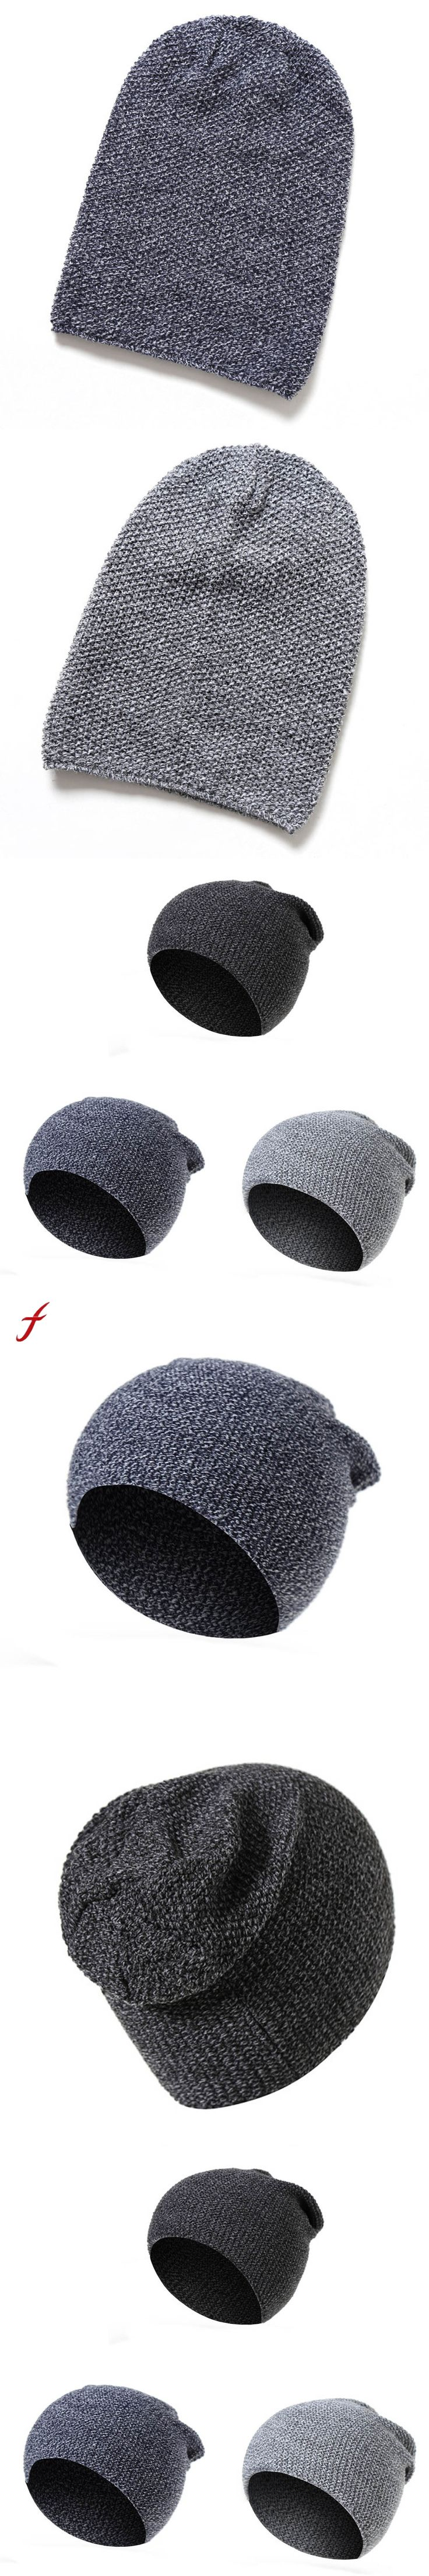 Men Women Baggy Warm Winter Wool Knit Ski Beanie Caps Hat Autumn And Winter women's hats Fashion Hats For man female cap 2017